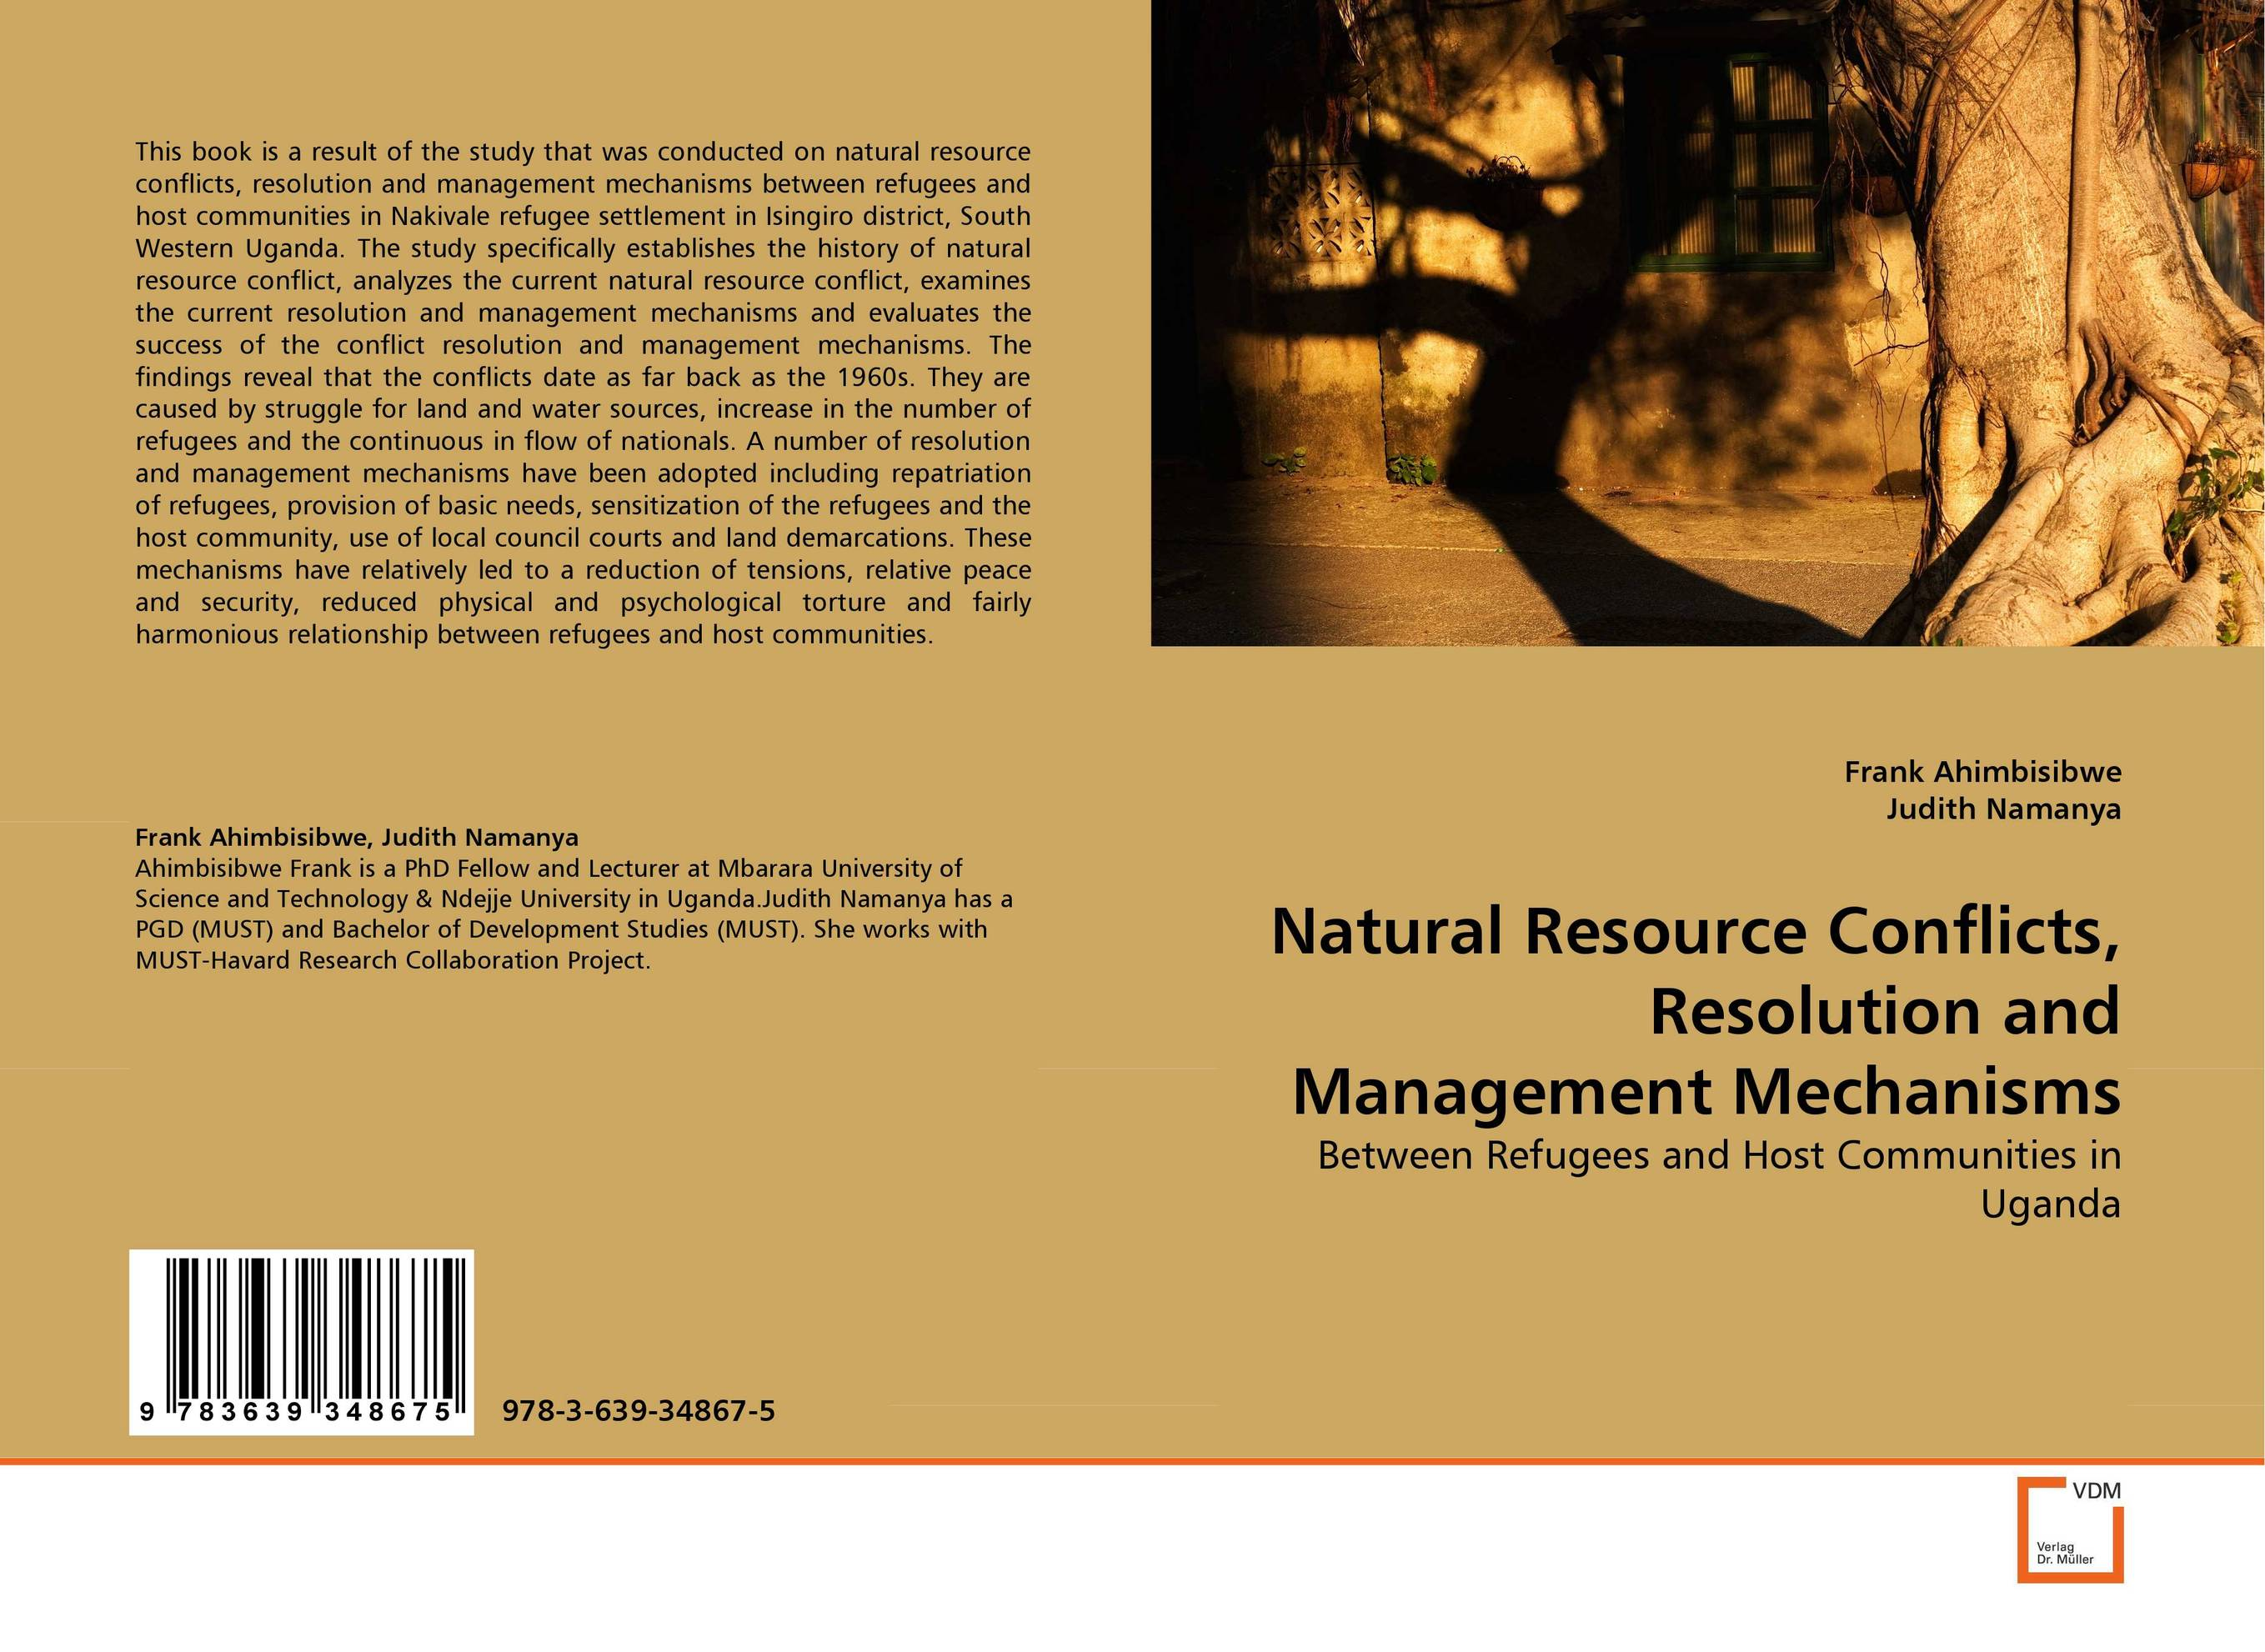 Natural Resource Conflicts, Resolution and Management Mechanisms livestock grazing and natural resource management in kumaon hills